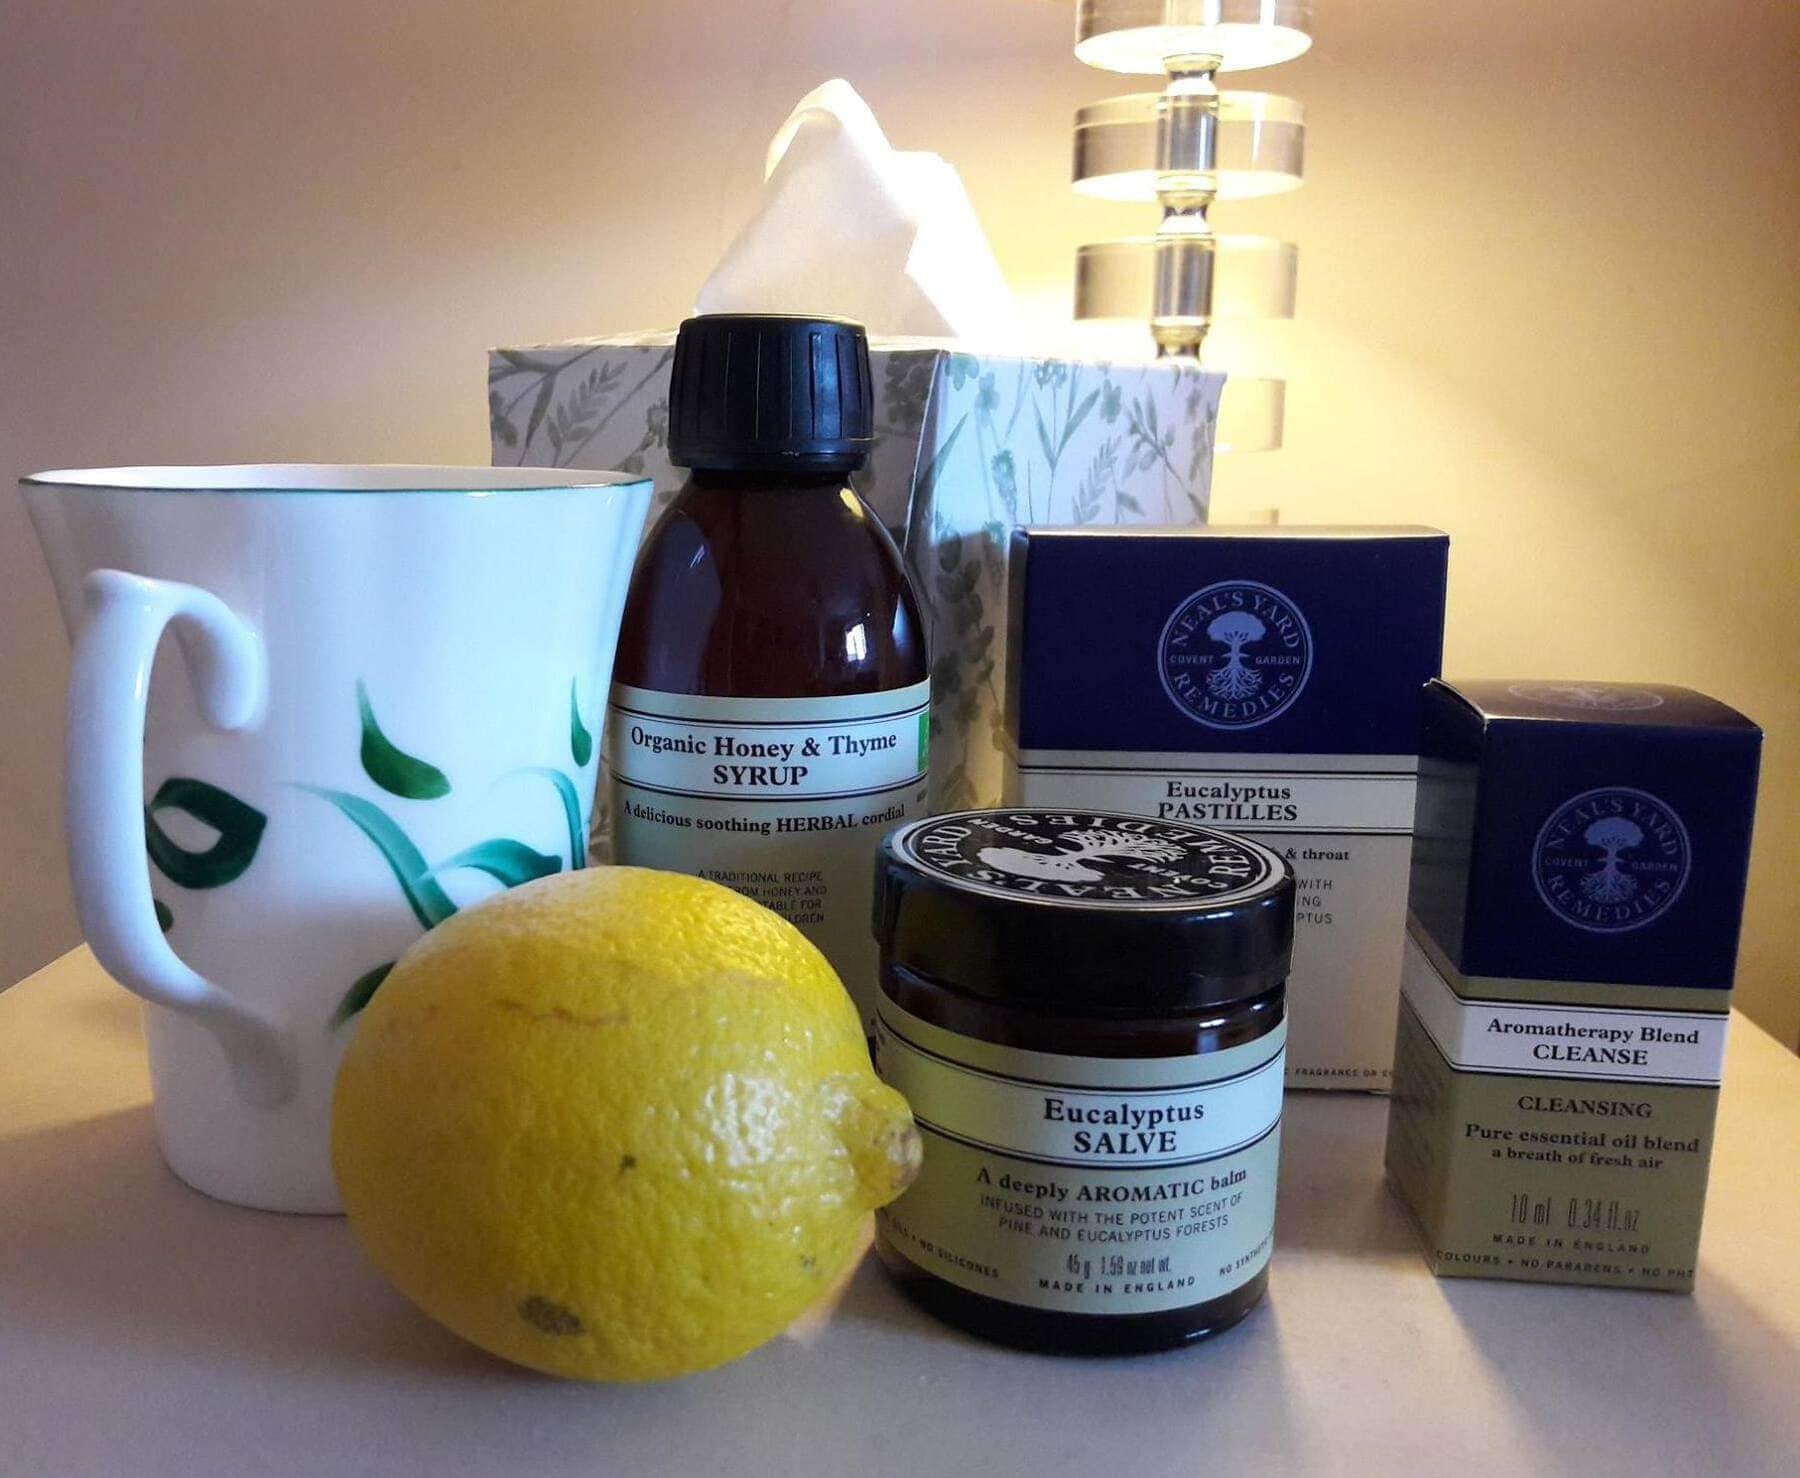 Use natural organic products to boost your health and support your yoga. Try Arnica salve for overworked muscles!